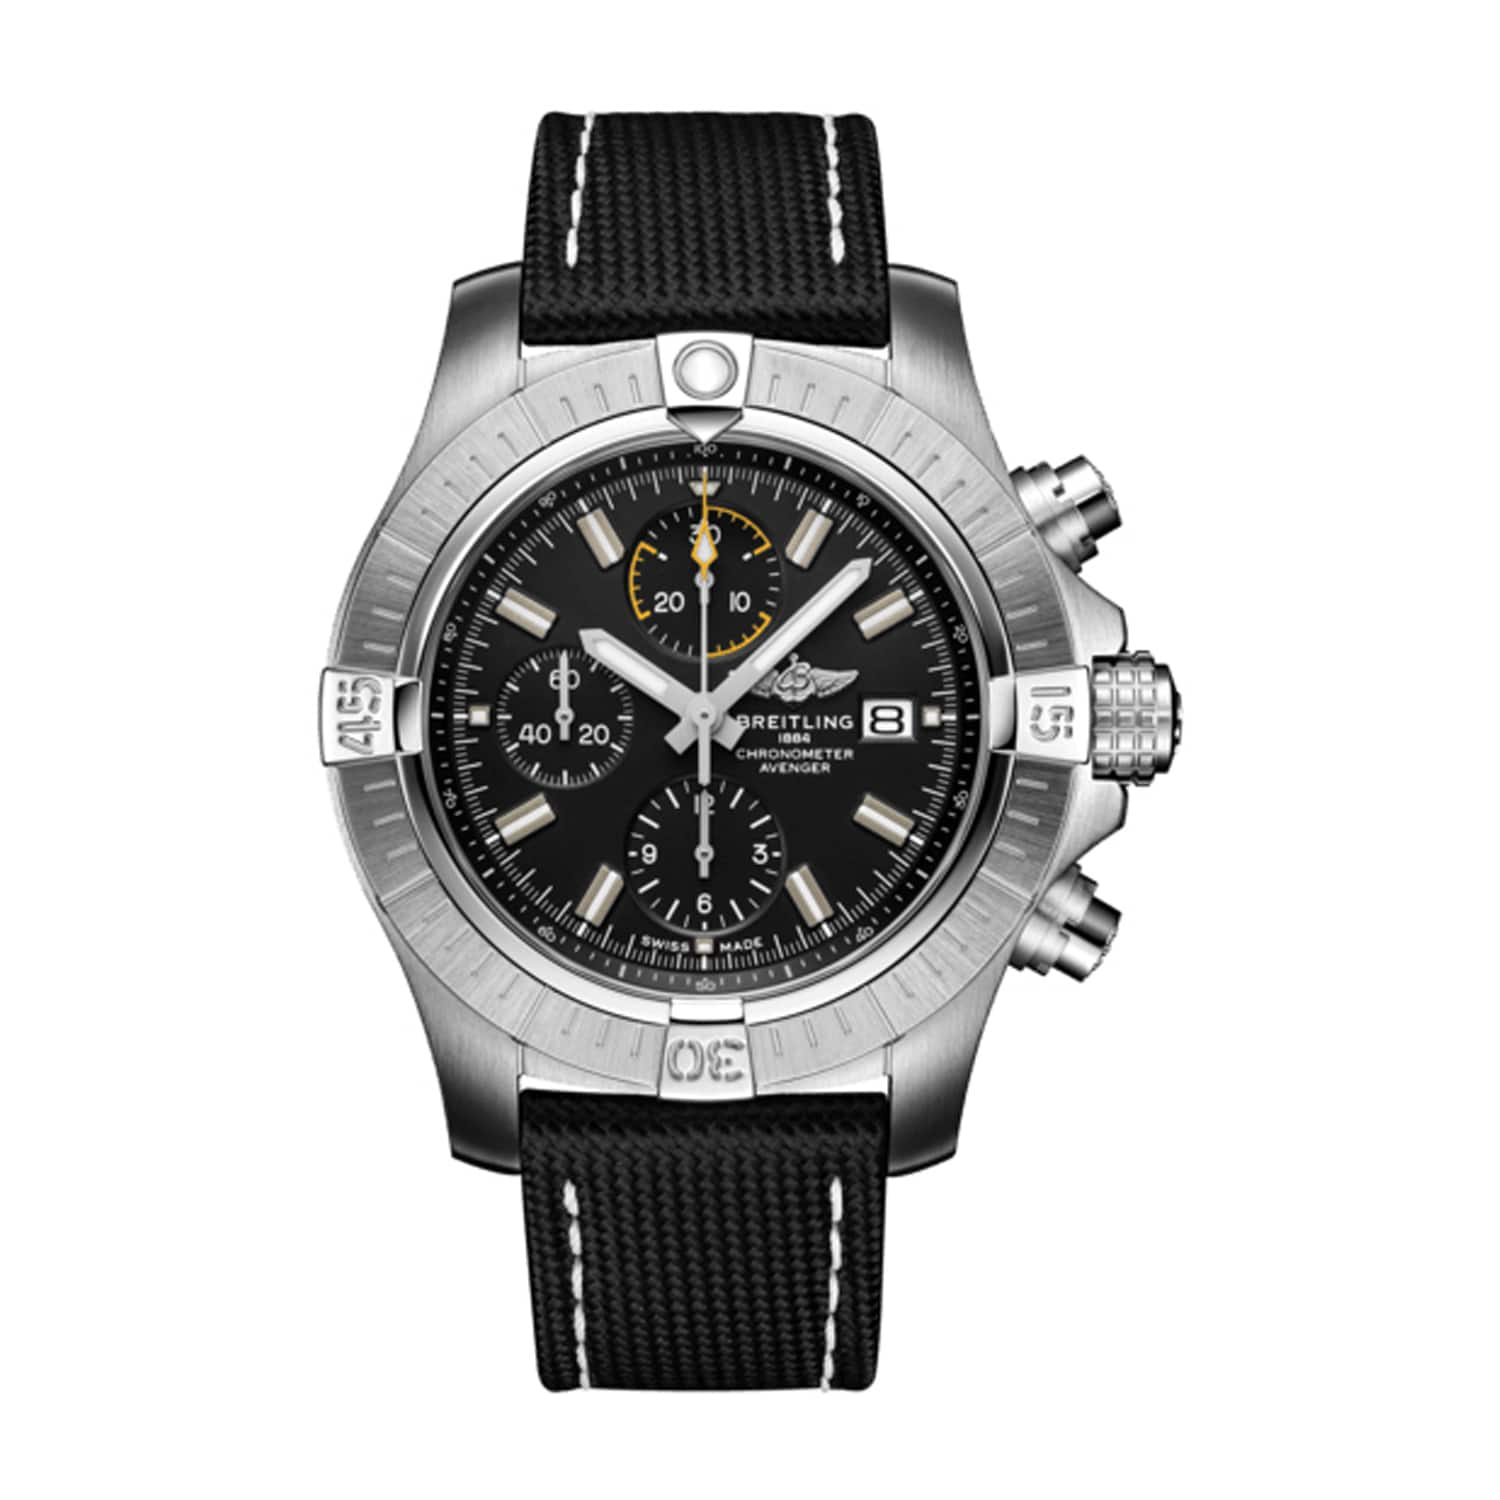 Breitling Avenger Chronograph Black Dial & Black Leather 45mm Watch